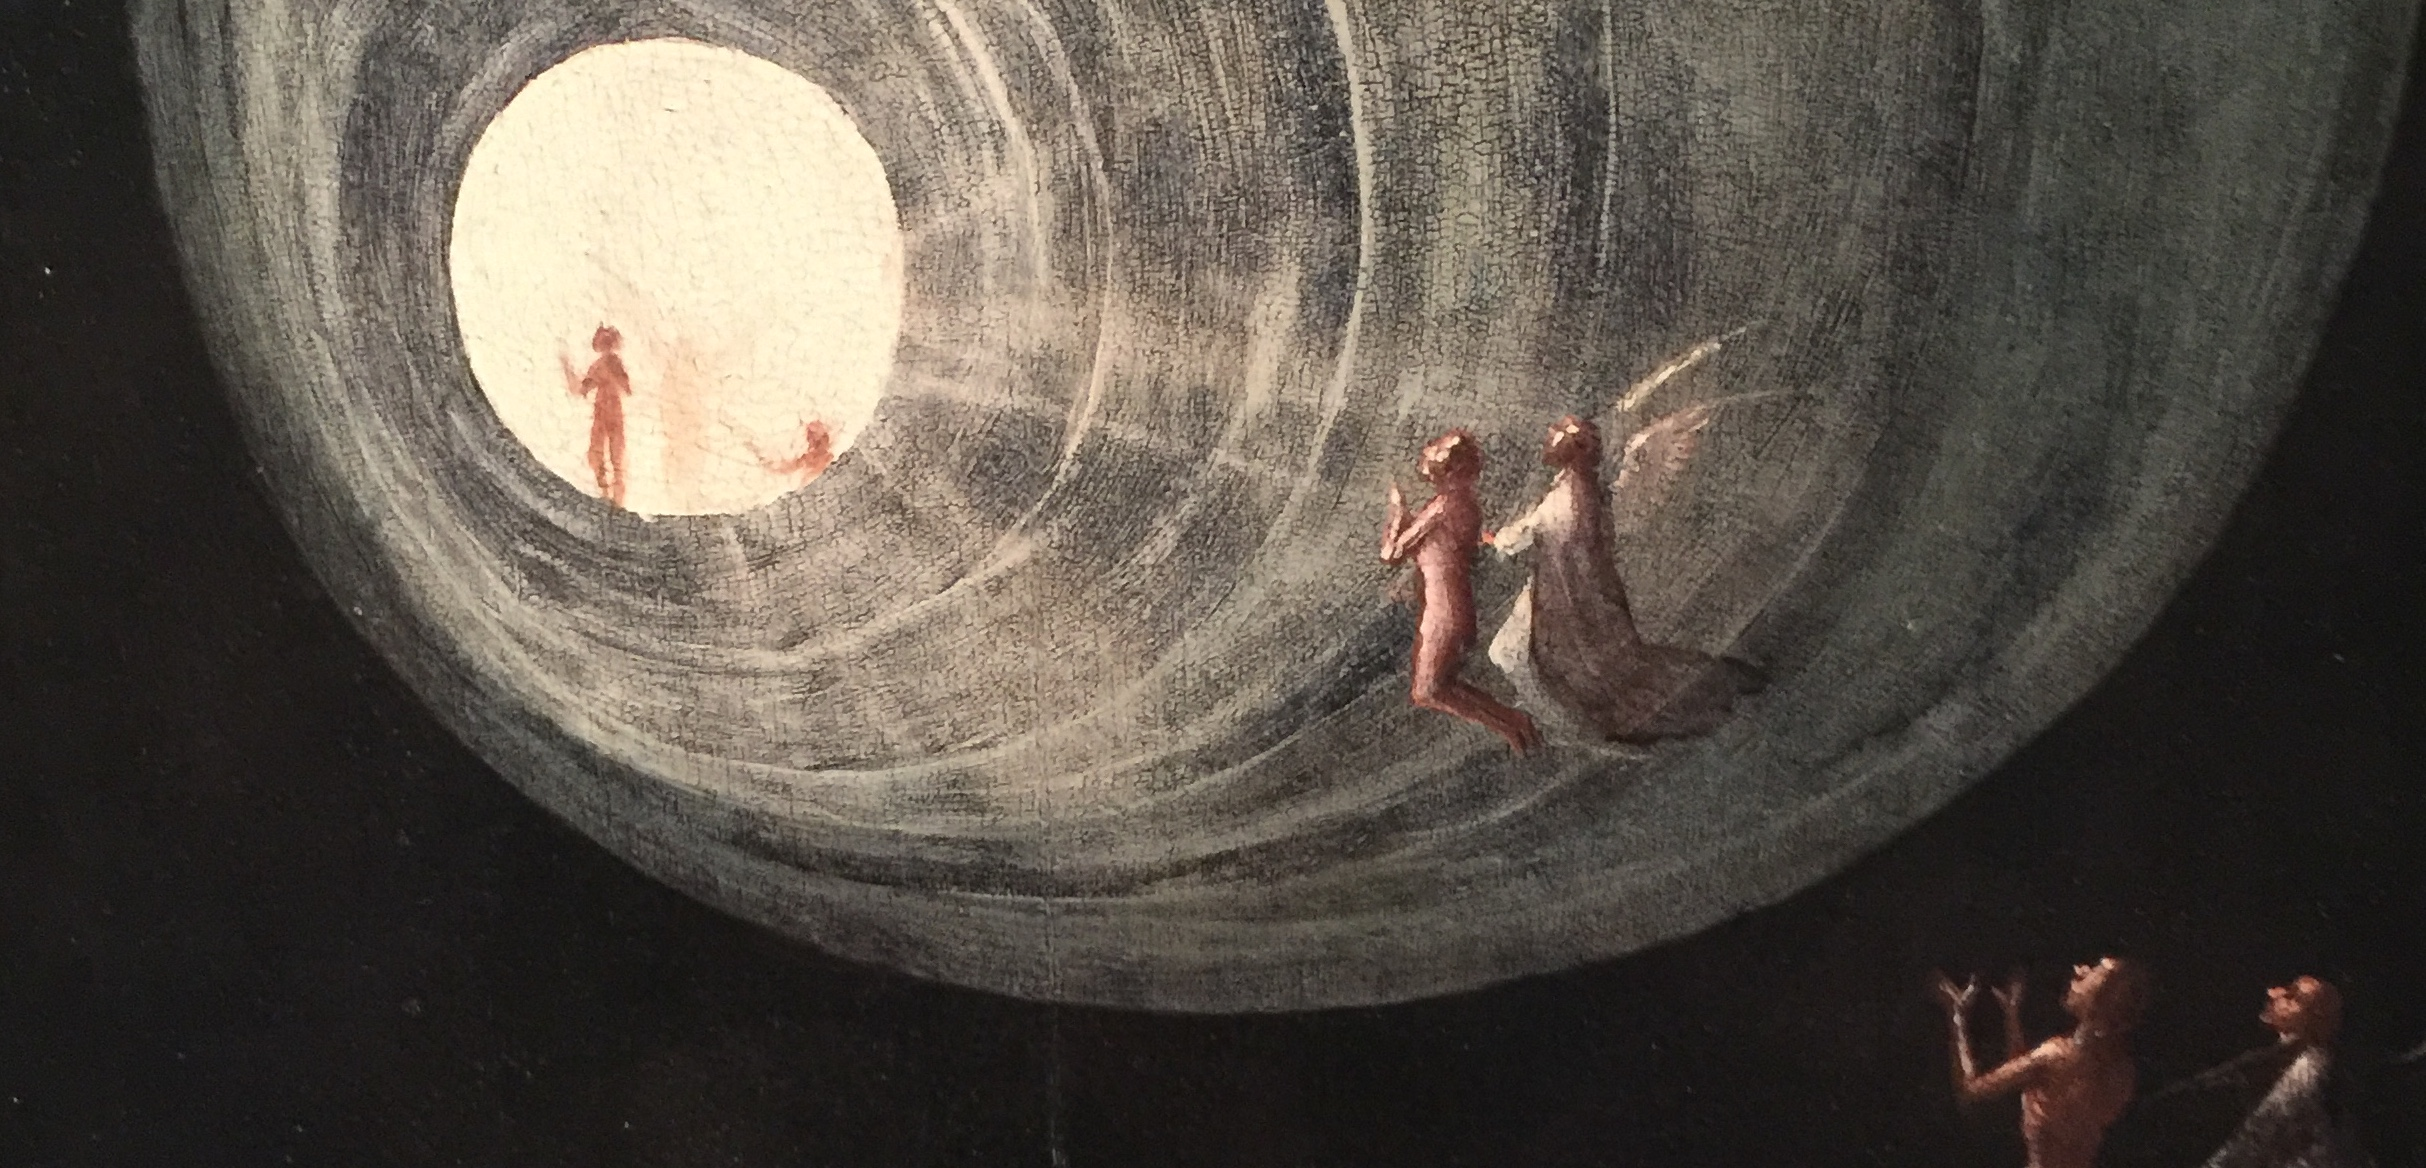 Visions of the Hereafter: Ascent to Heaven , Hieronymus Bosch, Gallerie dell'Accademia, Venice (photo RYC)